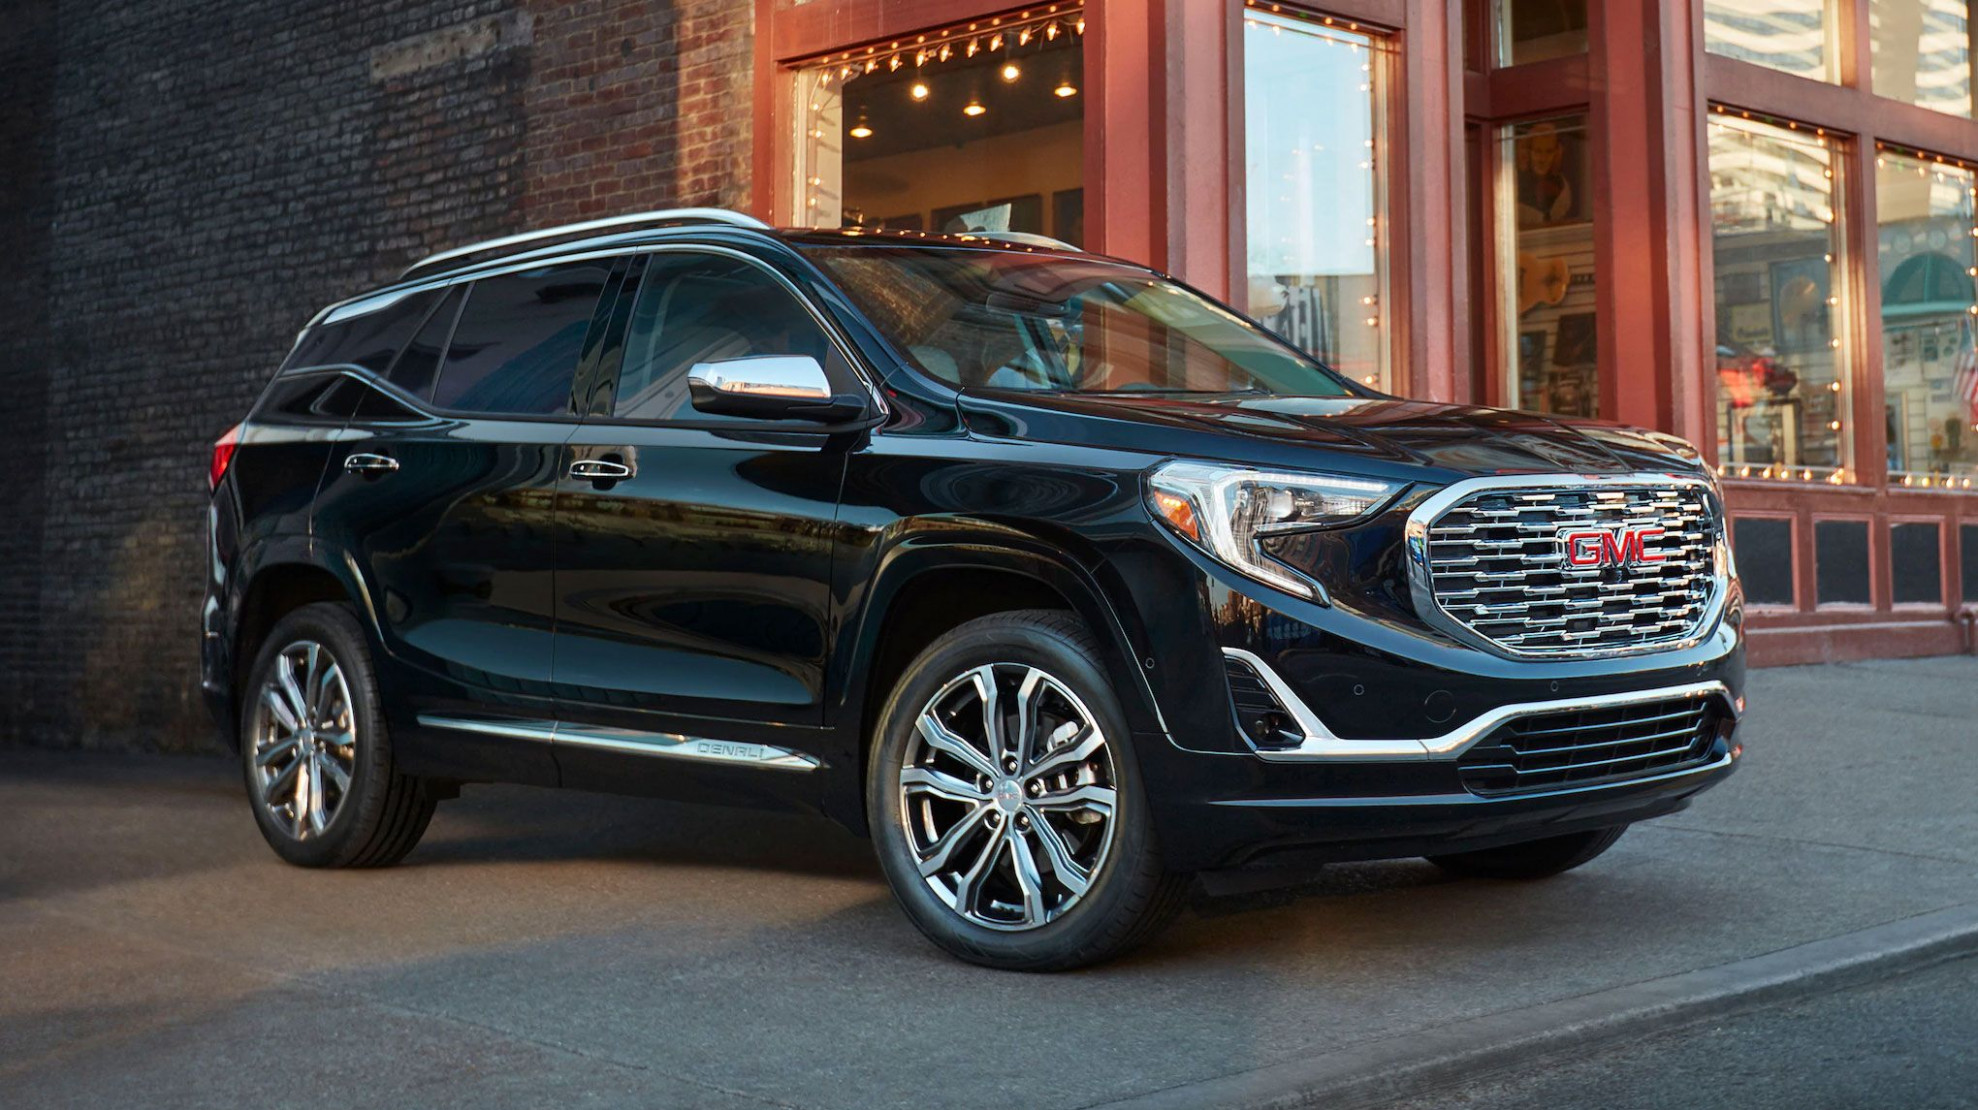 6 GMC Terrain Review, Pricing, and Specs | 2020 GMC Terrains